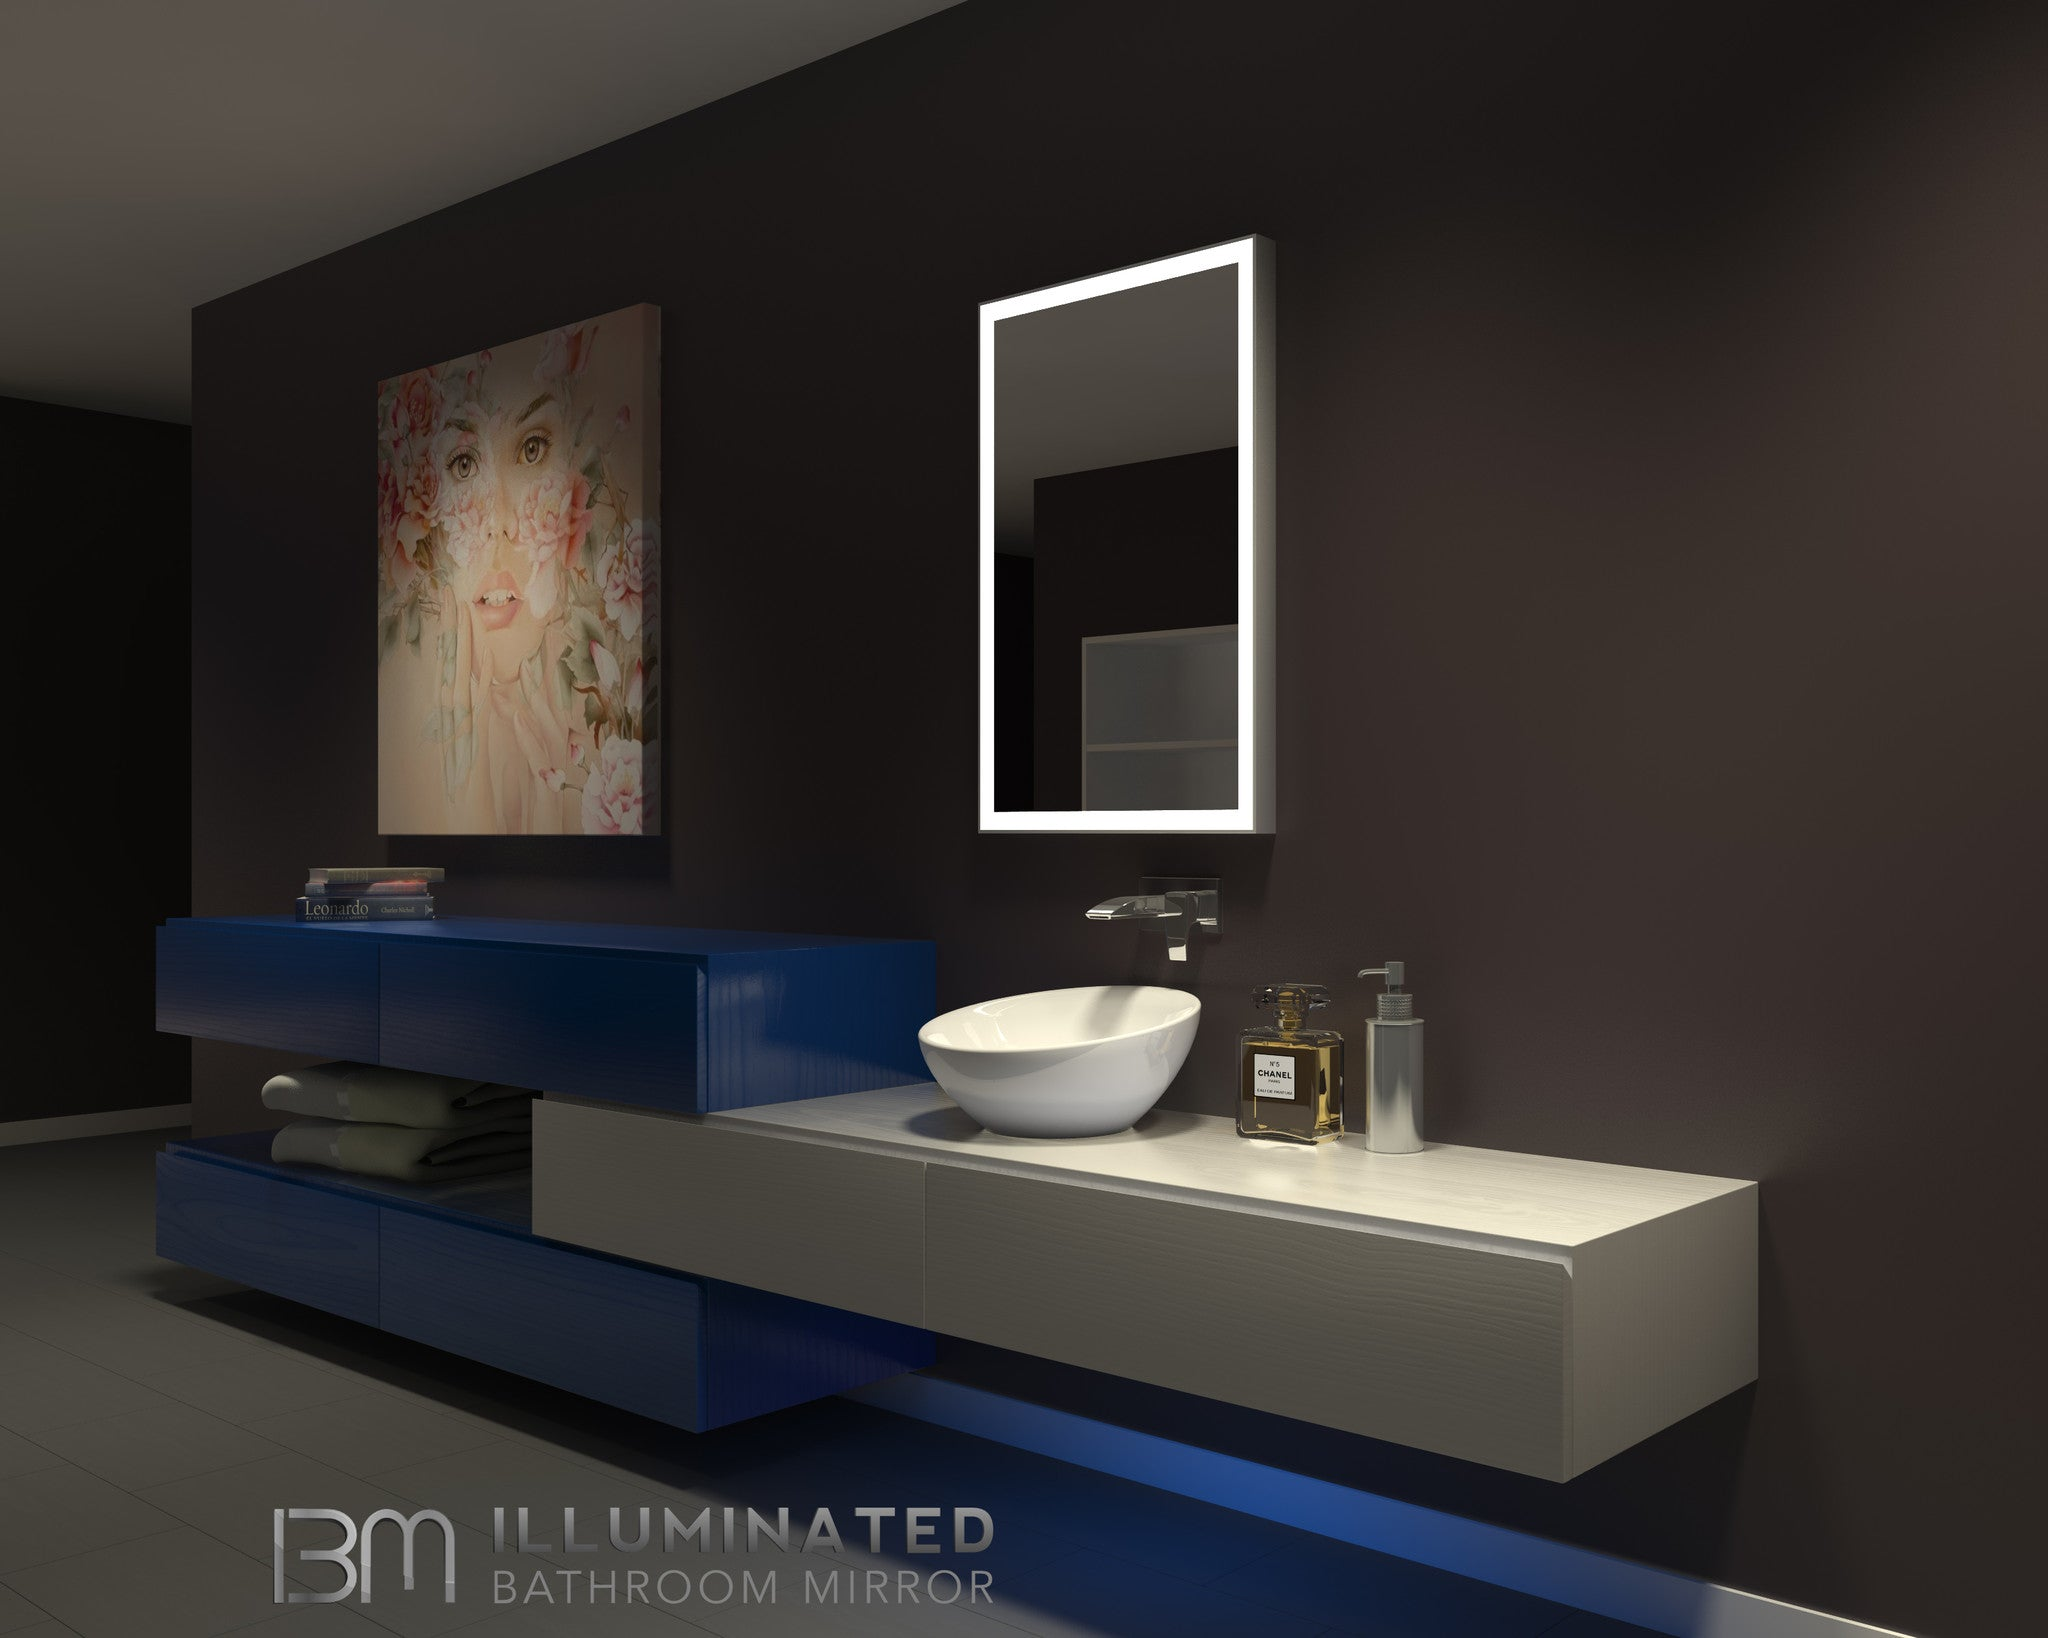 Bathroom Mirrors Vaughan modern lighted bathroom mirror & backlit bathroom mirror – ib mirror